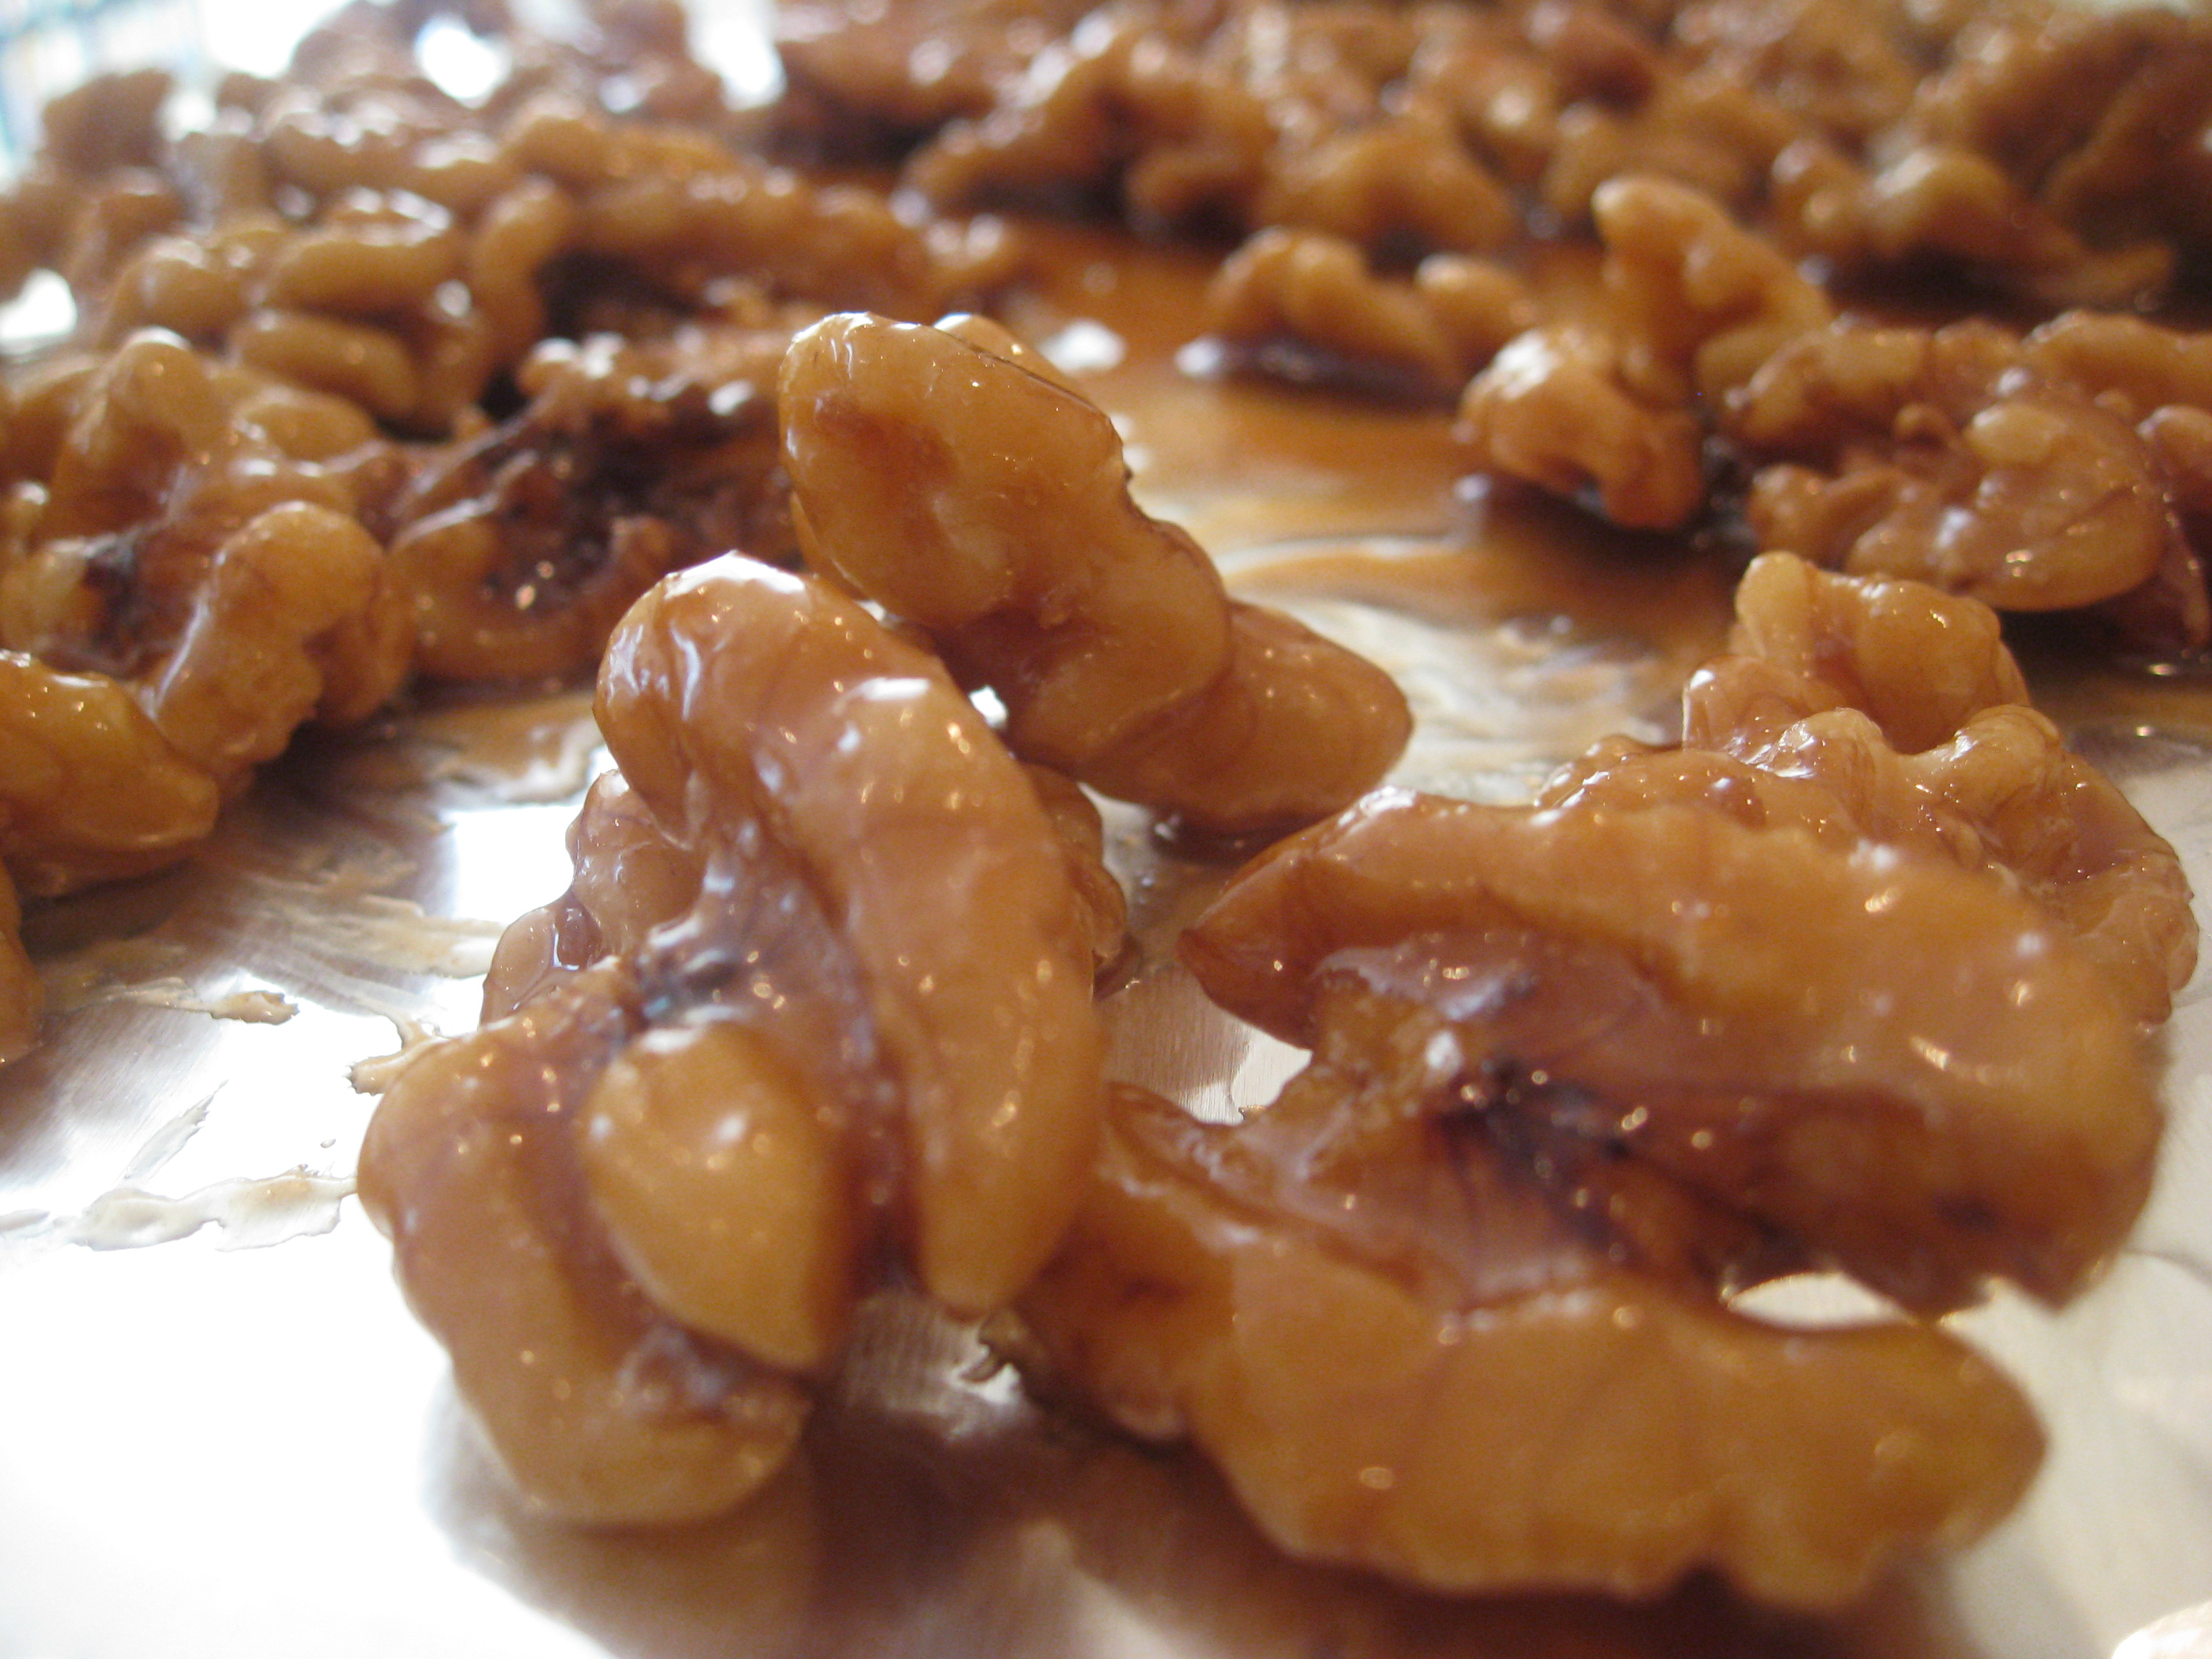 ... walnuts and stir with caramel walnuts and freshly toasted walnuts